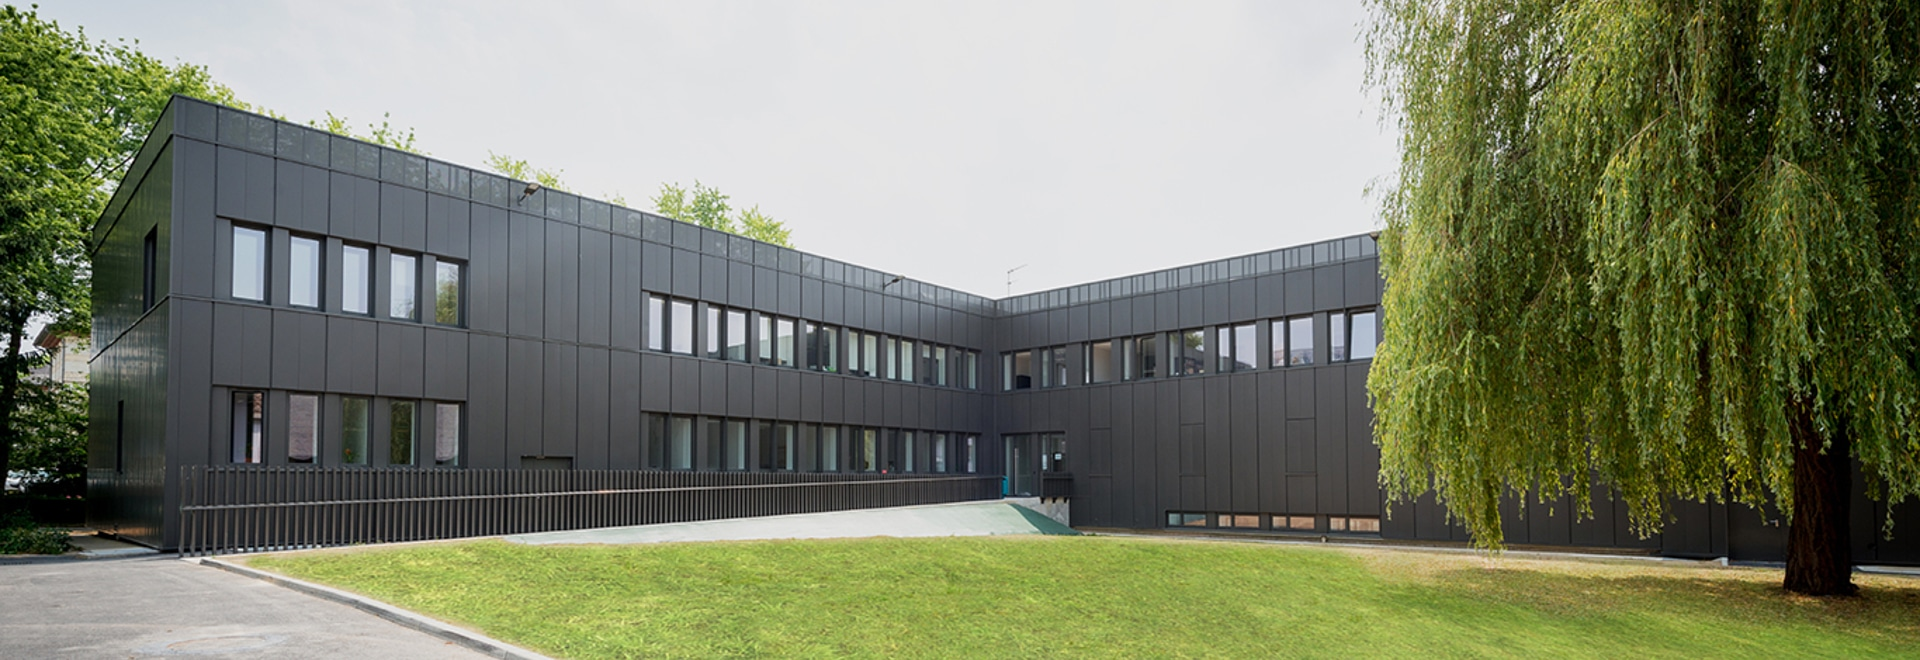 Renovation of Agrocampus-Rennes